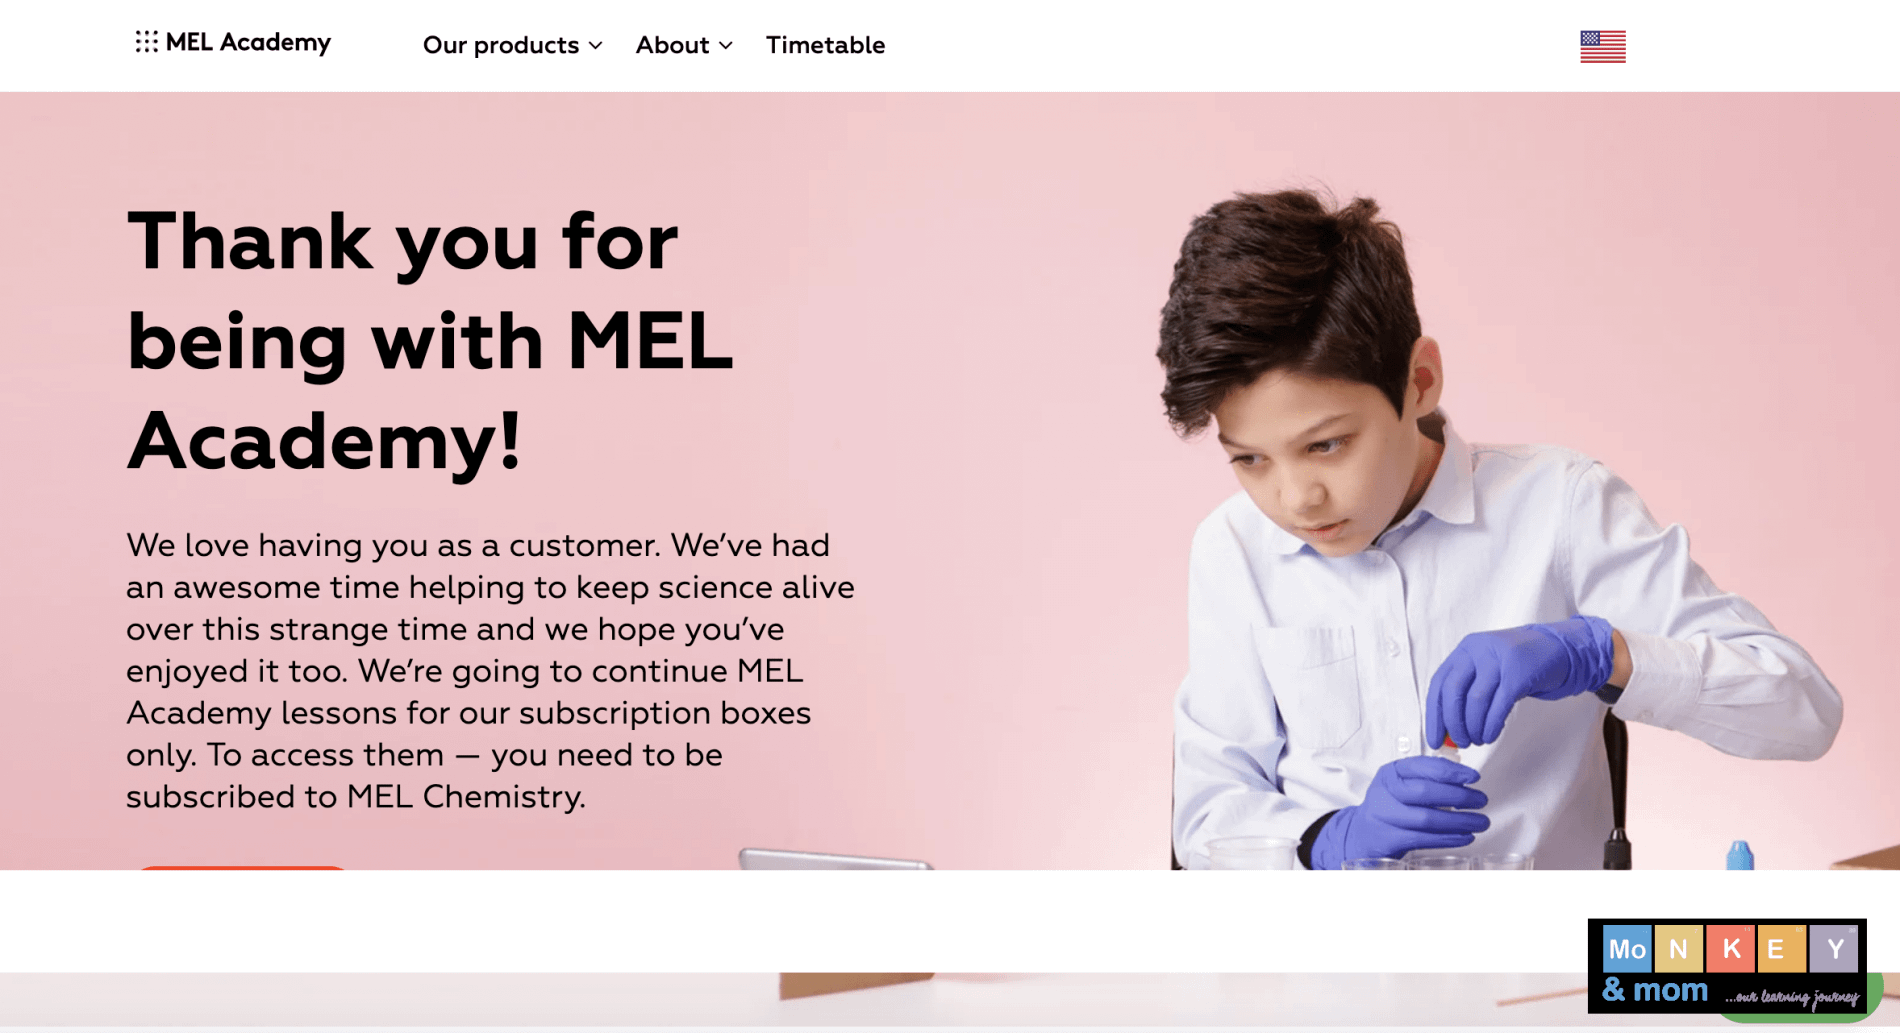 MEL Academy- MEL Chemistry subscription